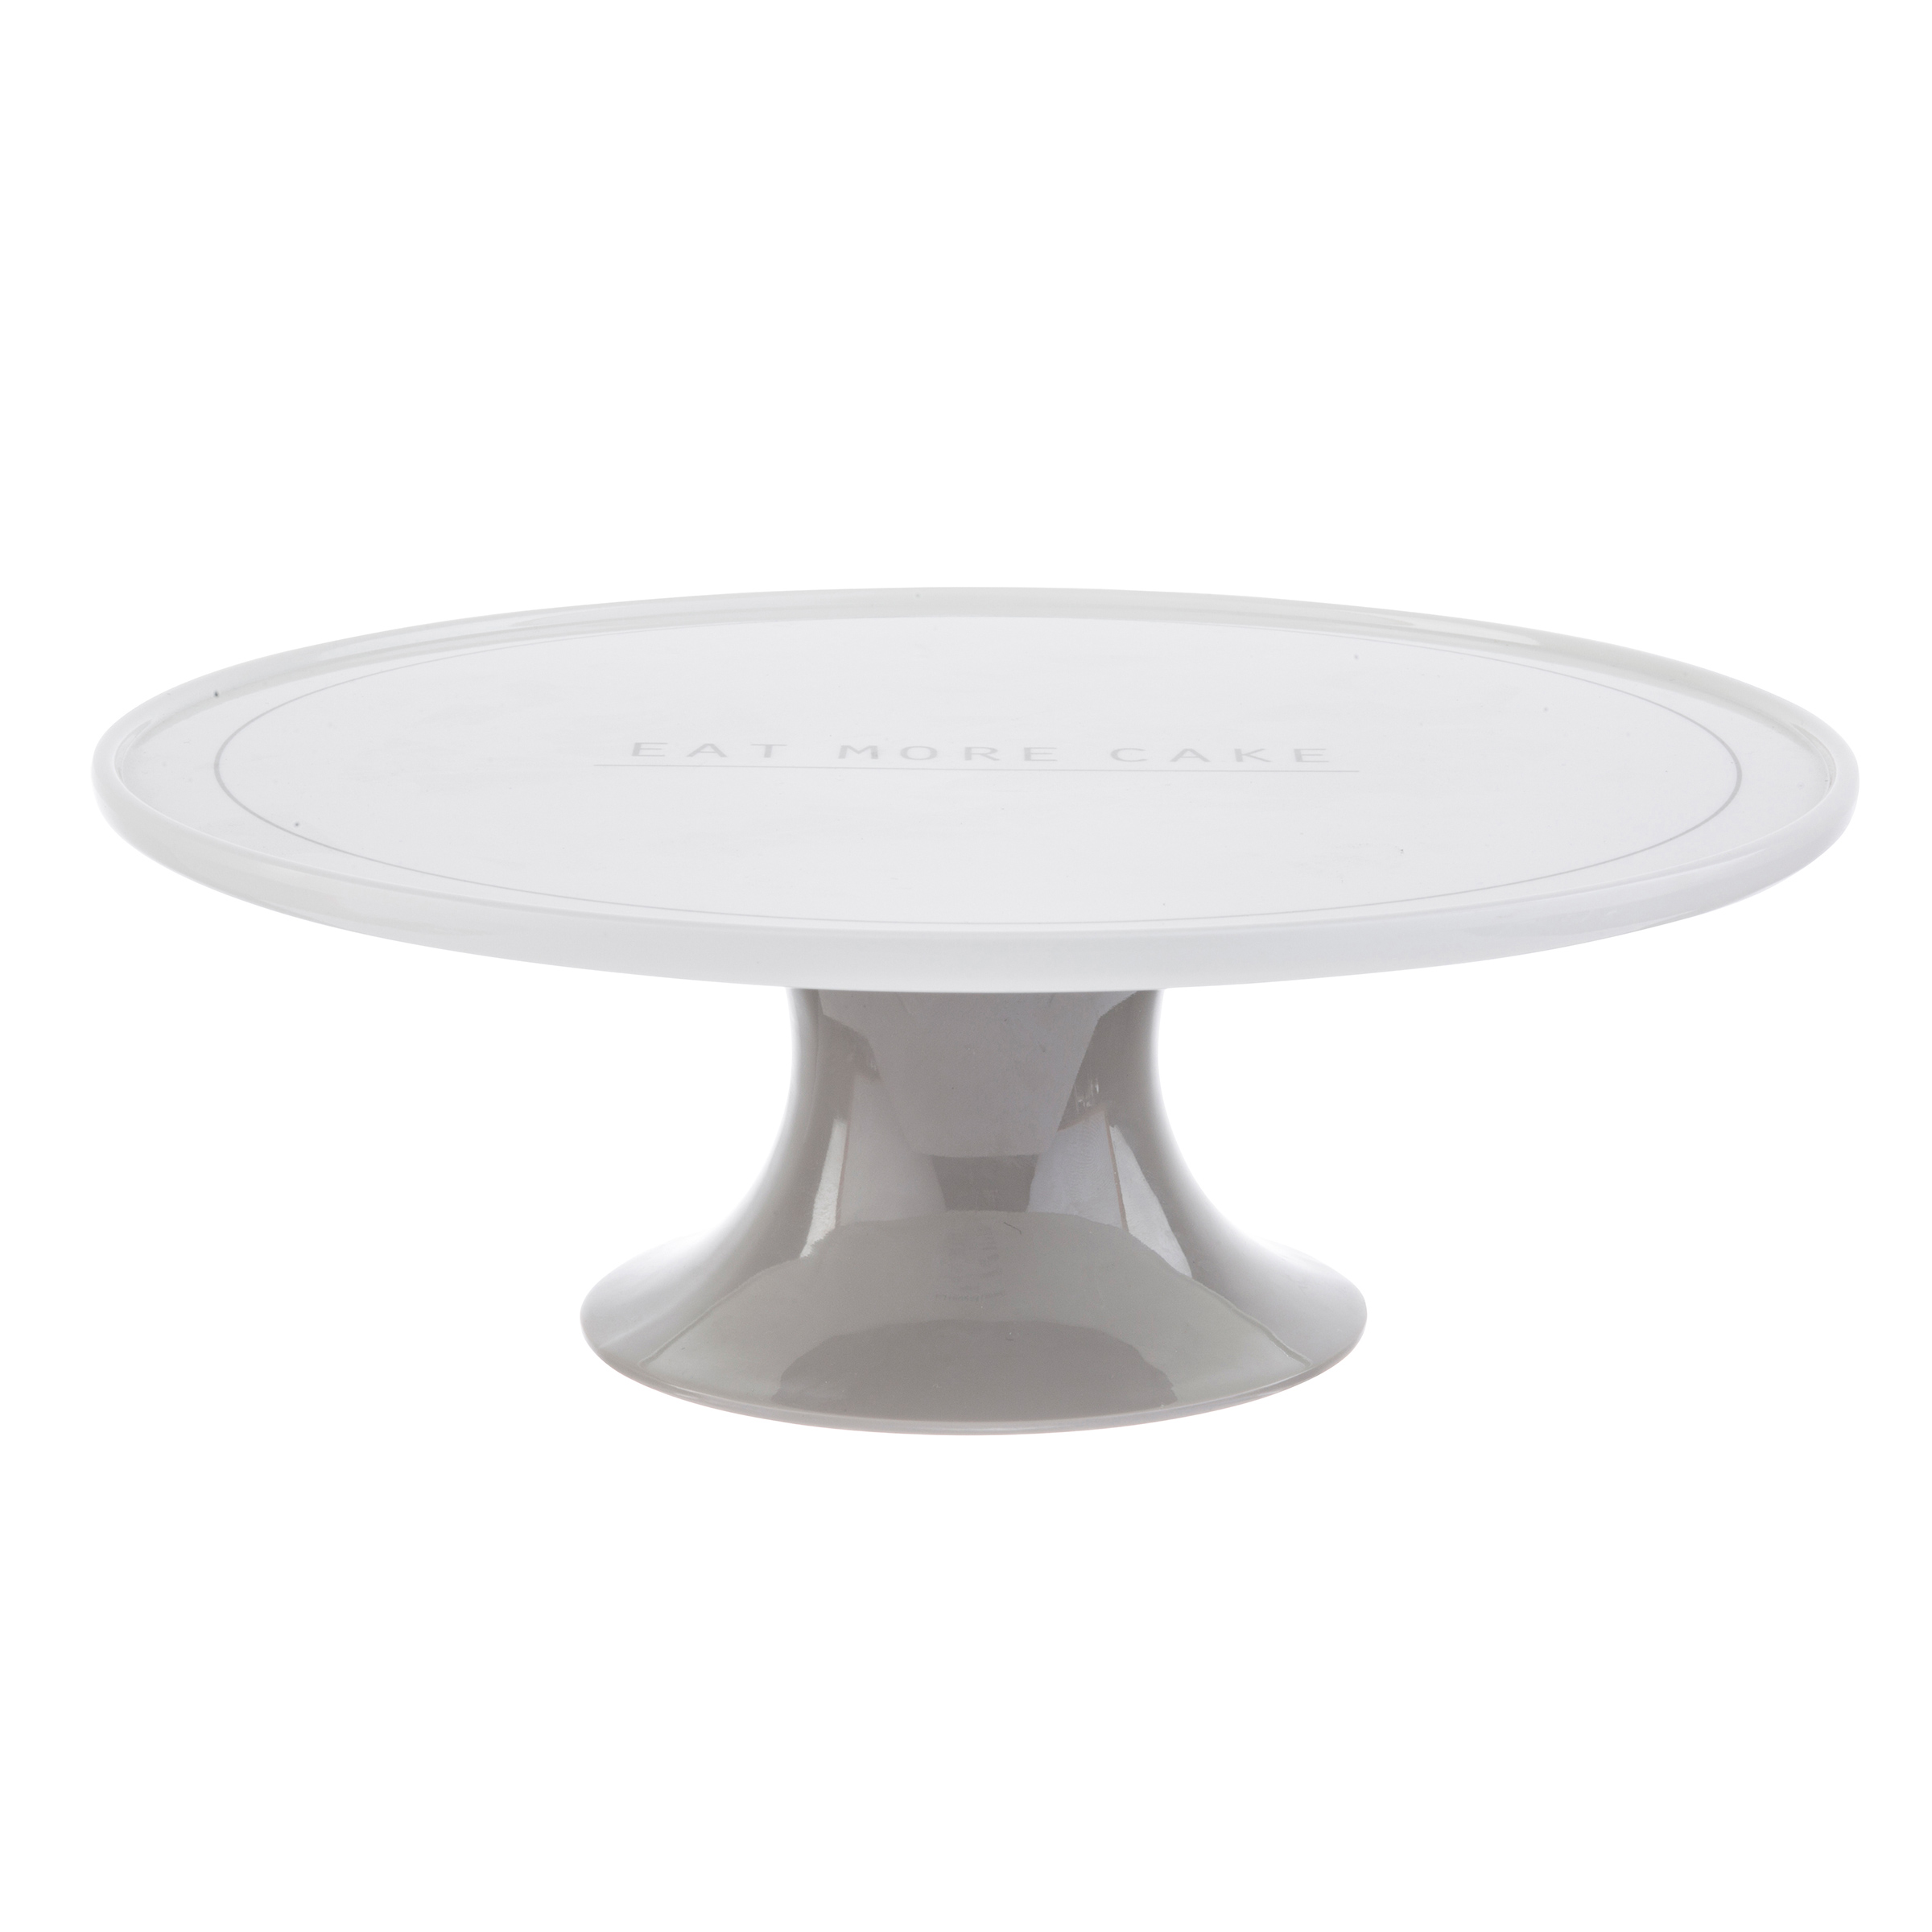 TableCraft Products 700018 cake / pie display stand